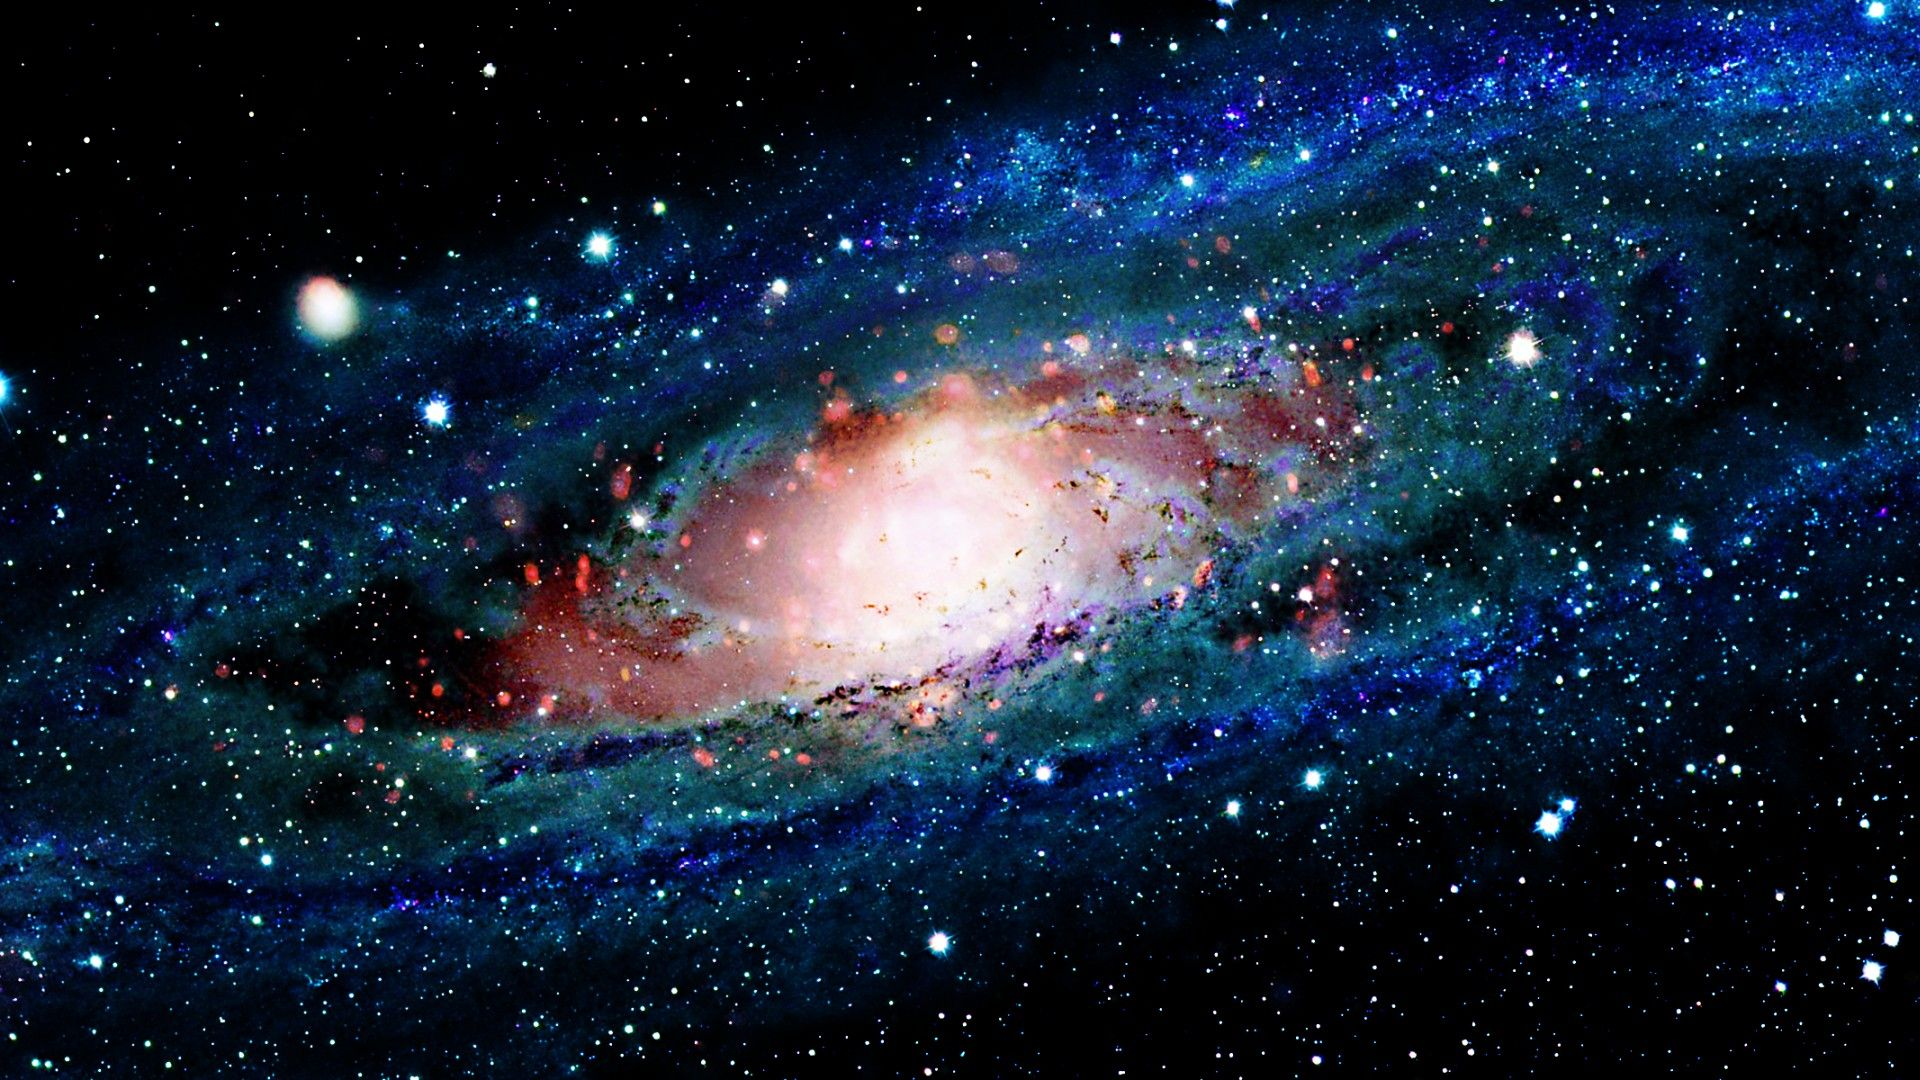 Whole Cool Space Galaxy Wallpaper Hd Wallpapers